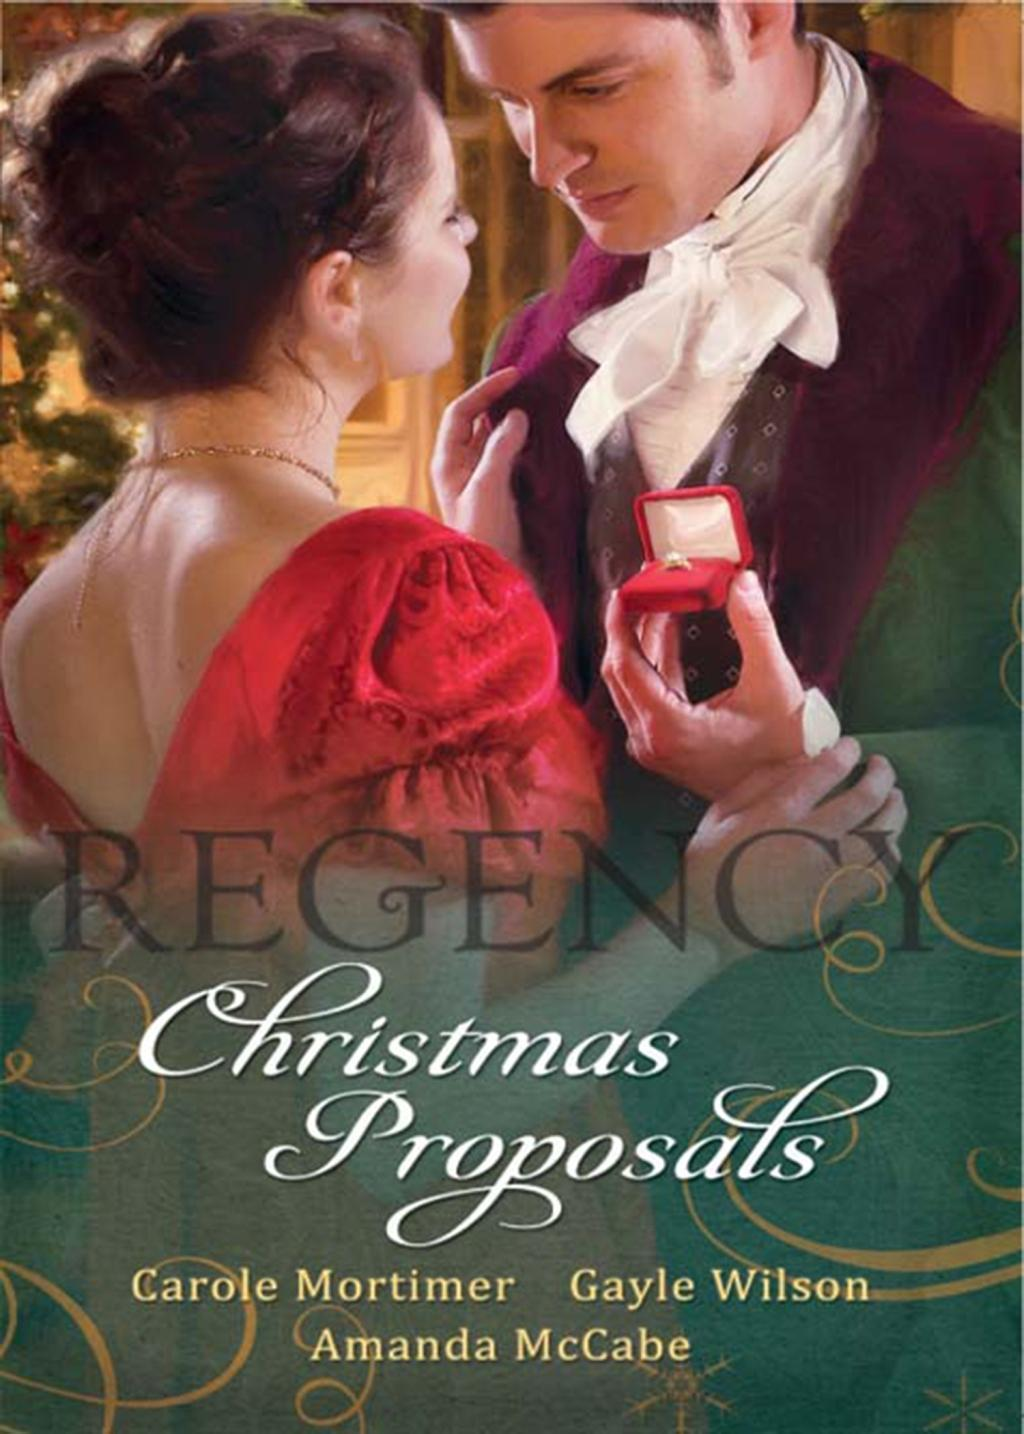 Regency Christmas Proposals: Christmas at Mulberry Hall / The Soldier's Christmas Miracle / Snowbound and Seduced (Mills & Boon M&B)